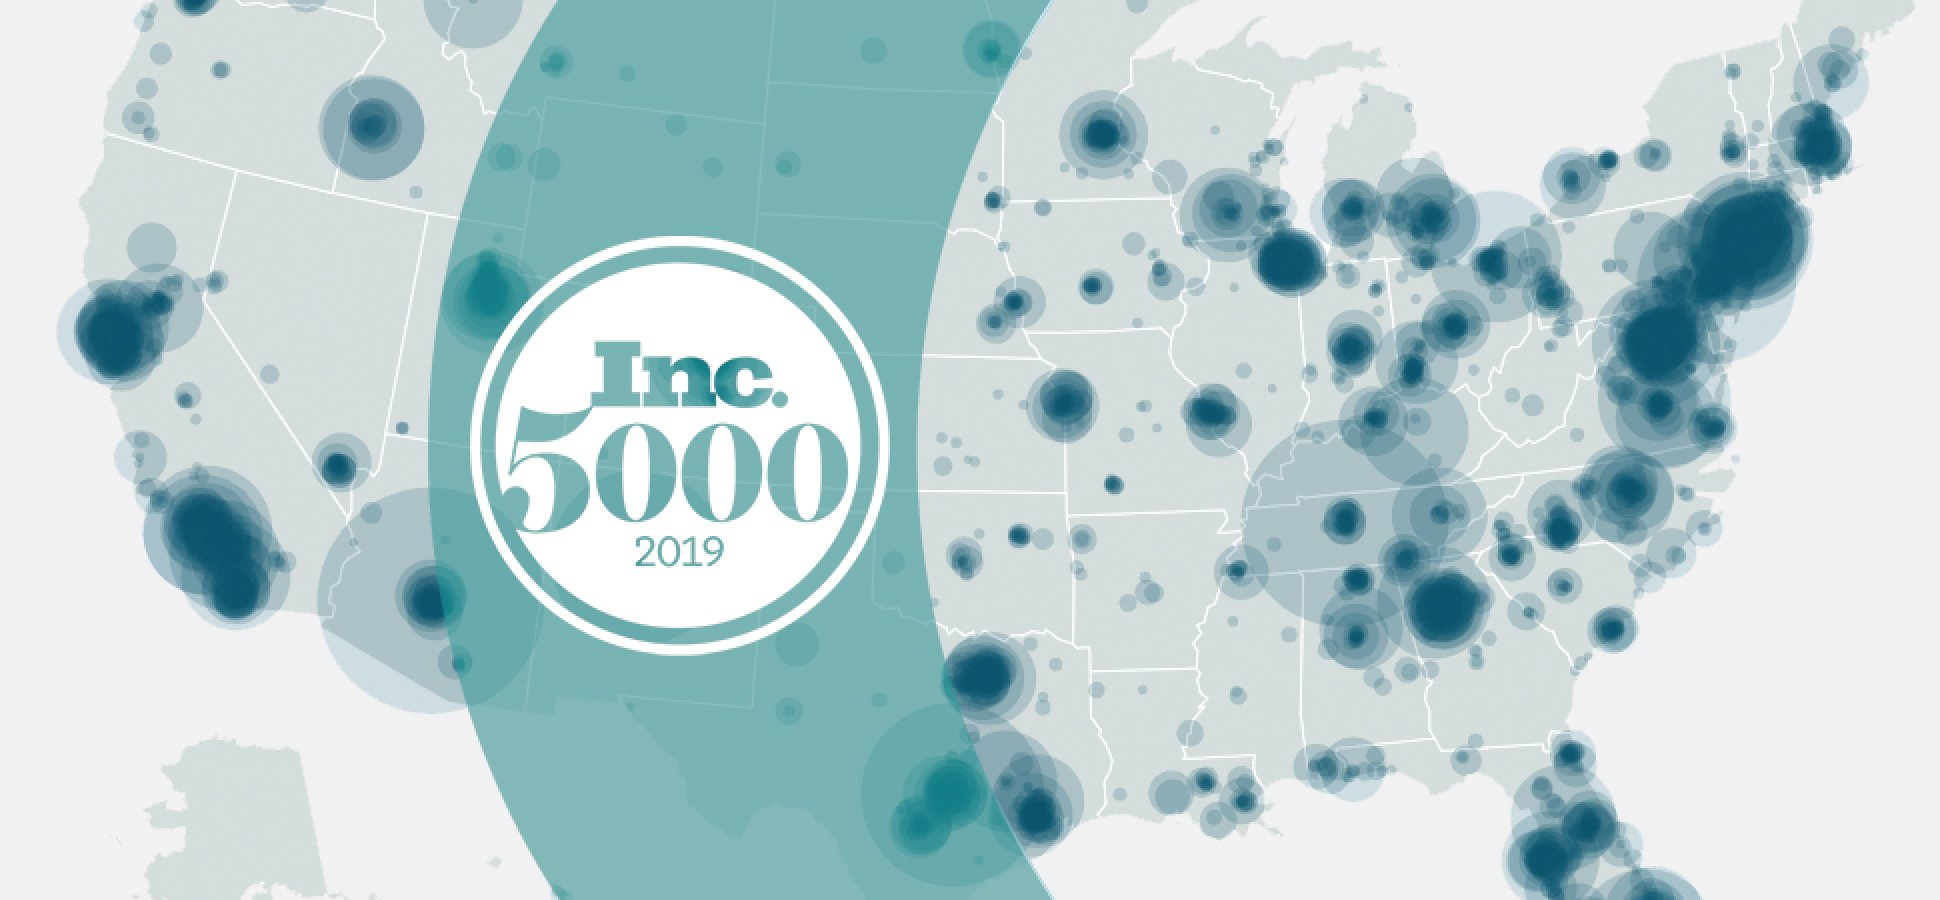 2019 Inc  5000 Map: Where Business Is Booming In America